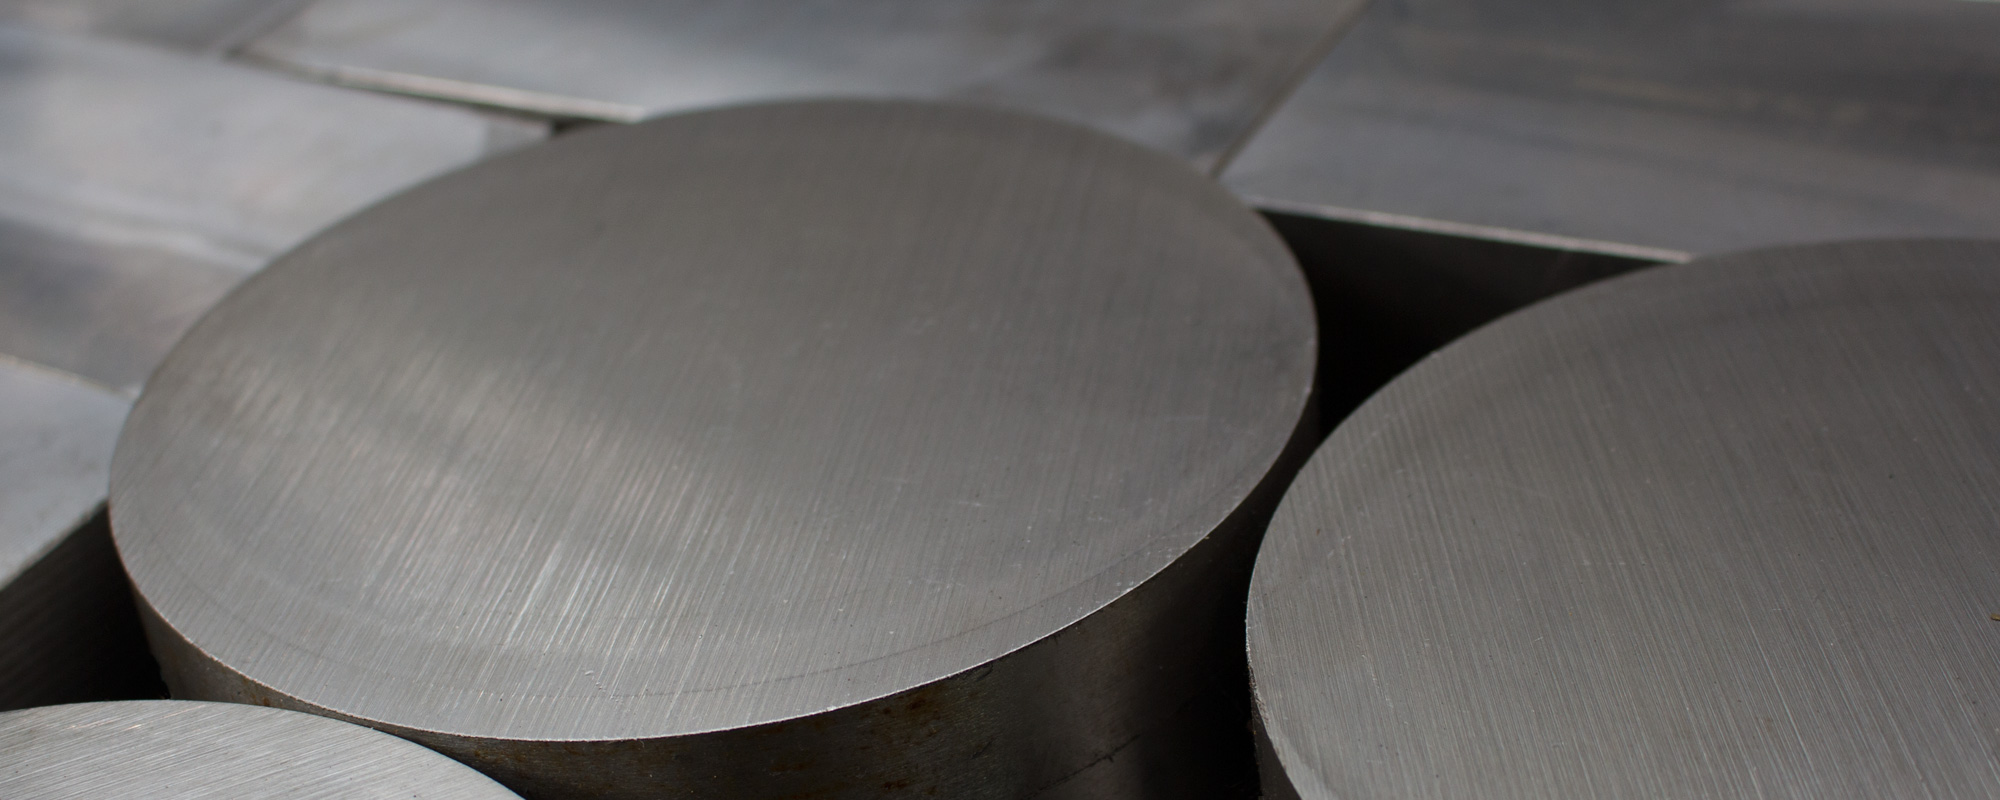 Martensitic Stainless Delivered Nationwide By West